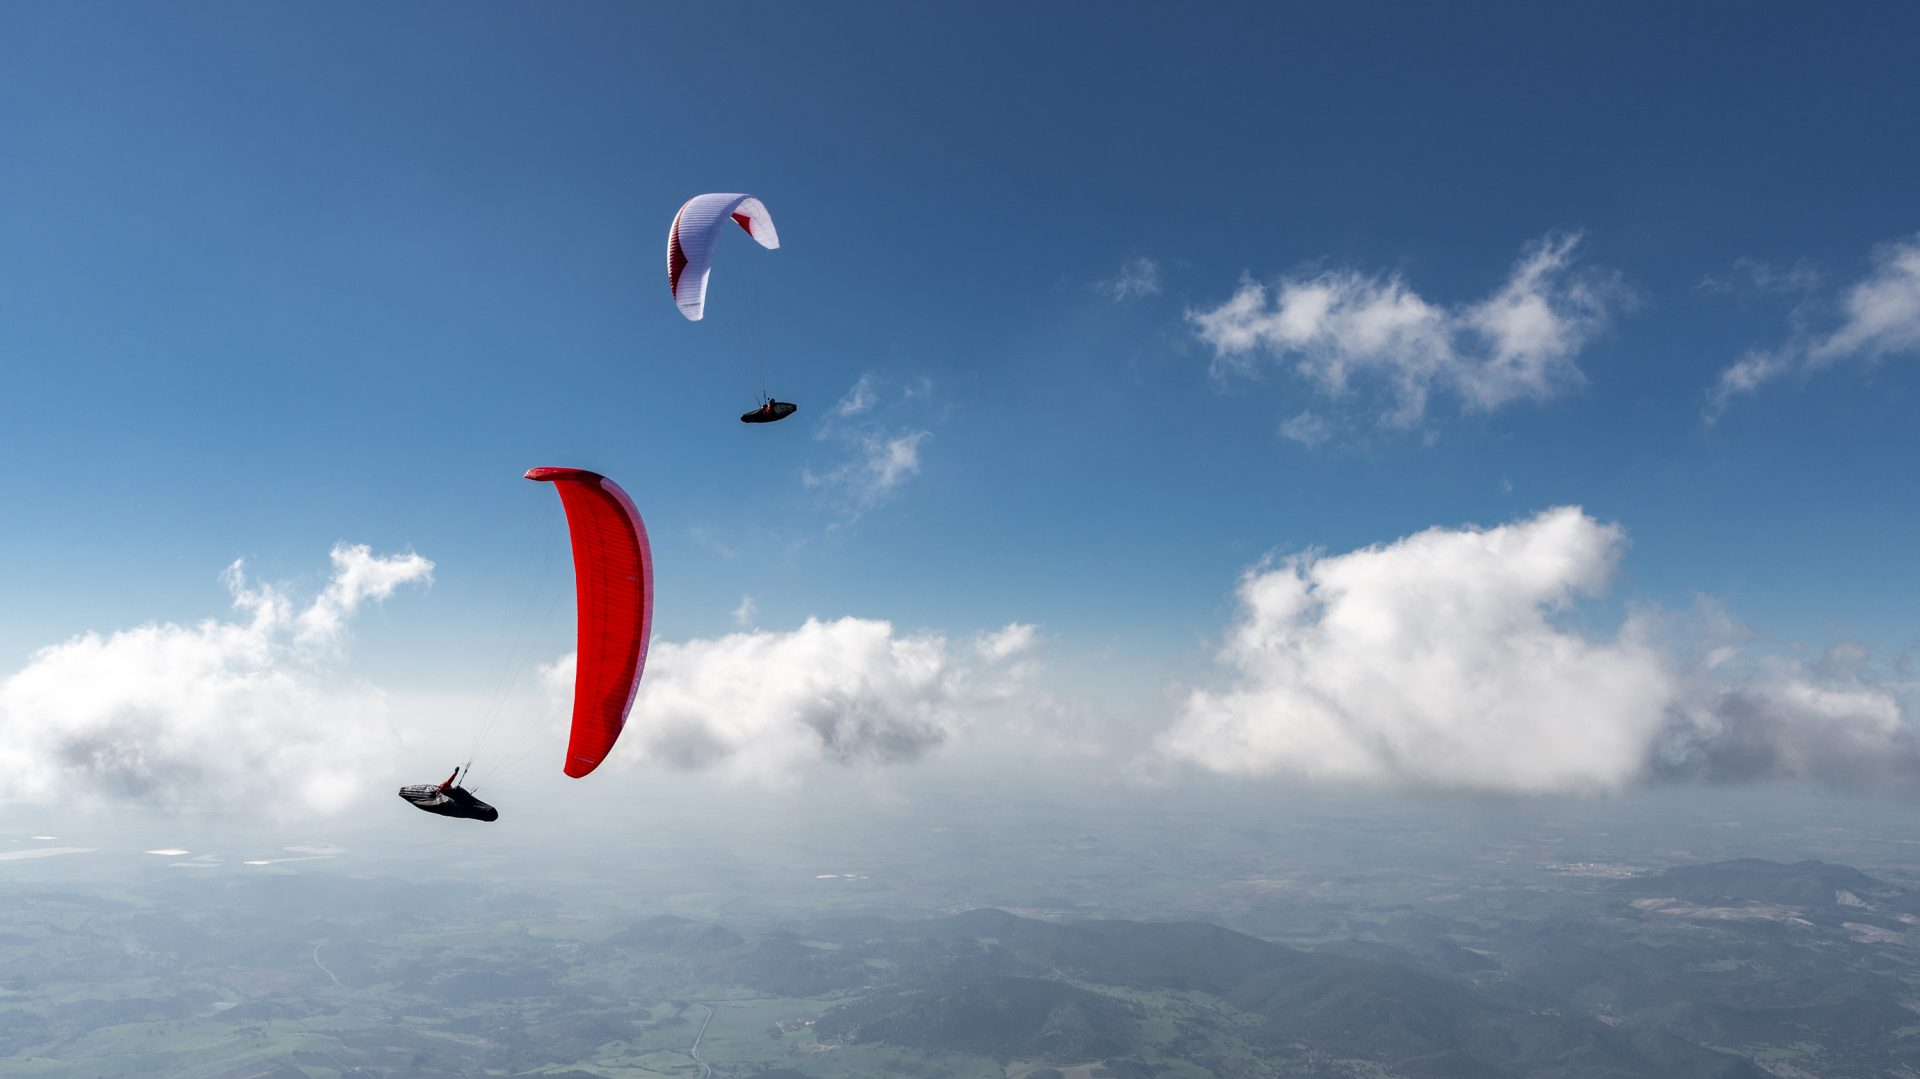 Gin Paragliding Norway